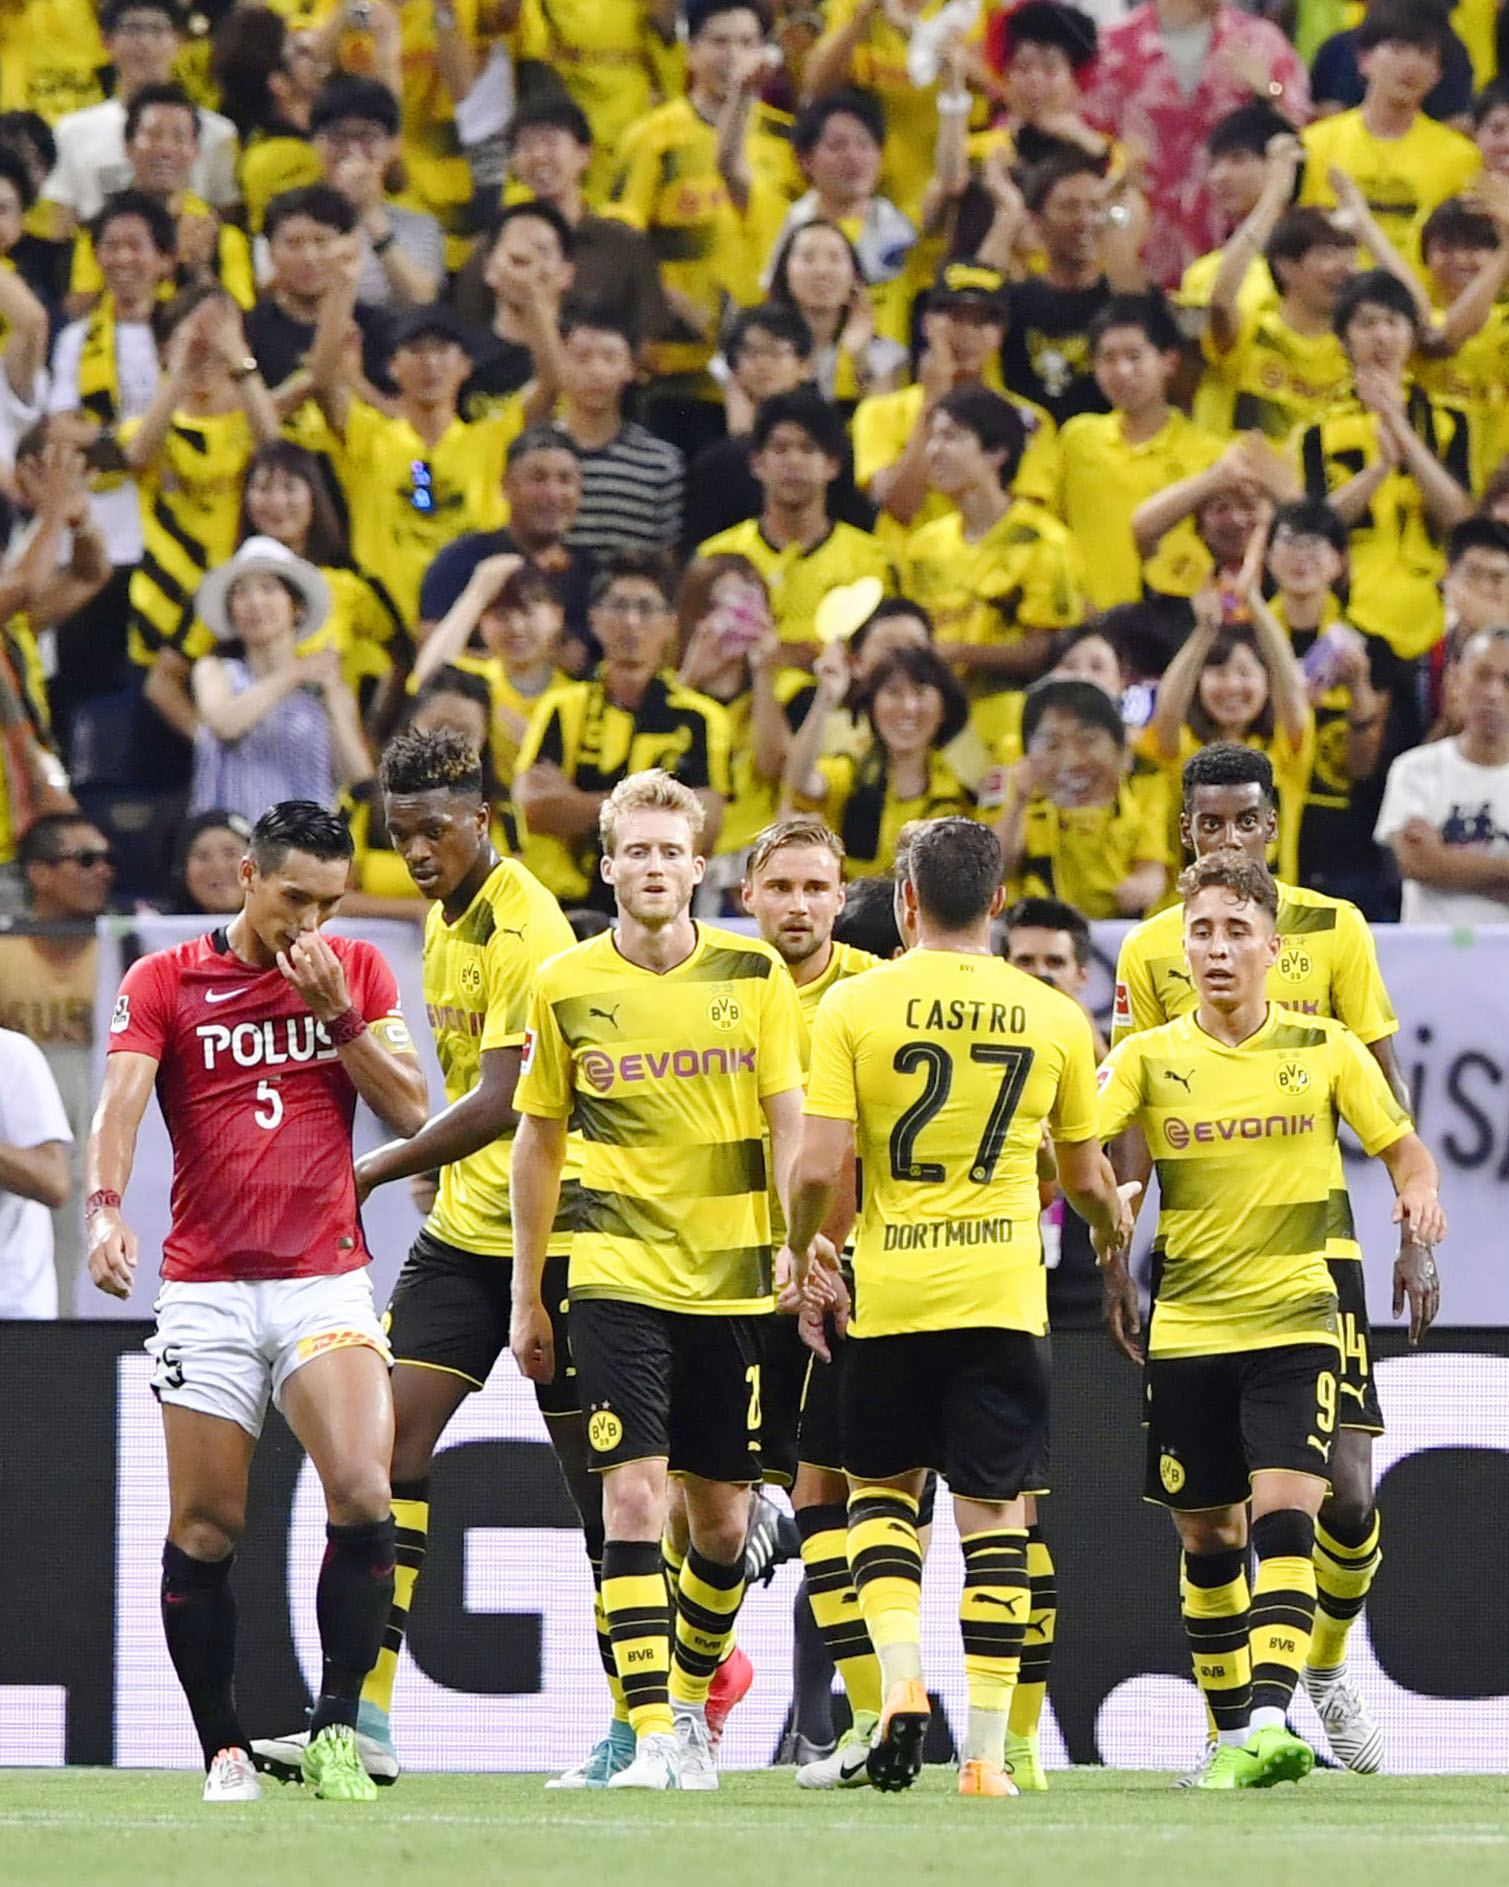 Urawa Reds vs Borussia Dortmund in int'l friendly